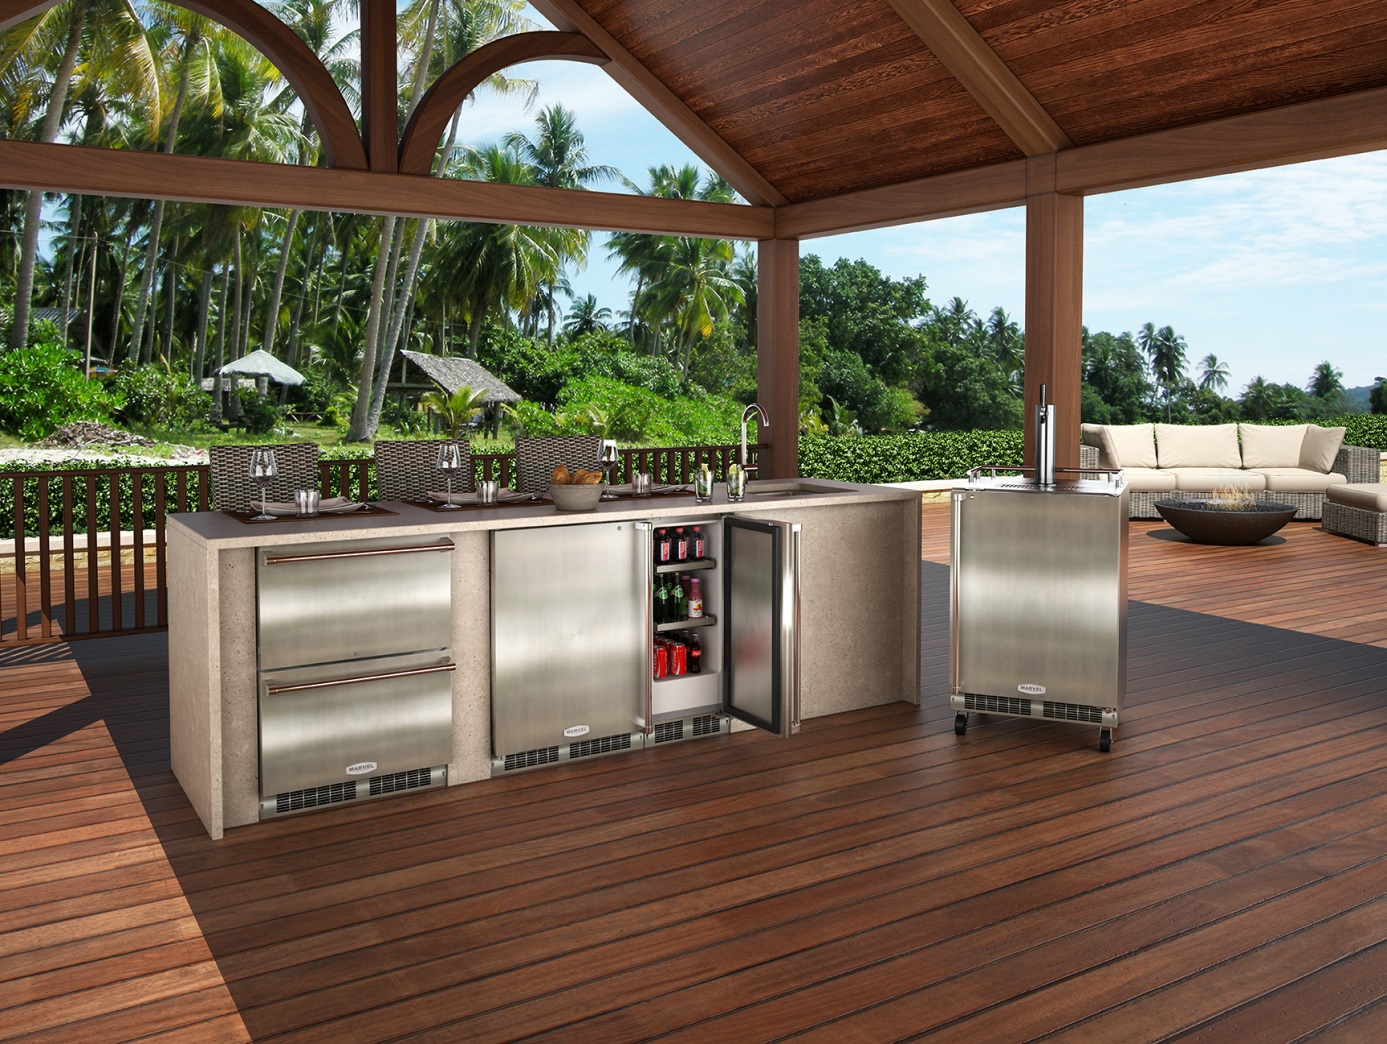 High Efficiency Outdoor Kitchens With Images Outdoor Kitchen Design Outdoor Kitchen Decor Outdoor Kitchen